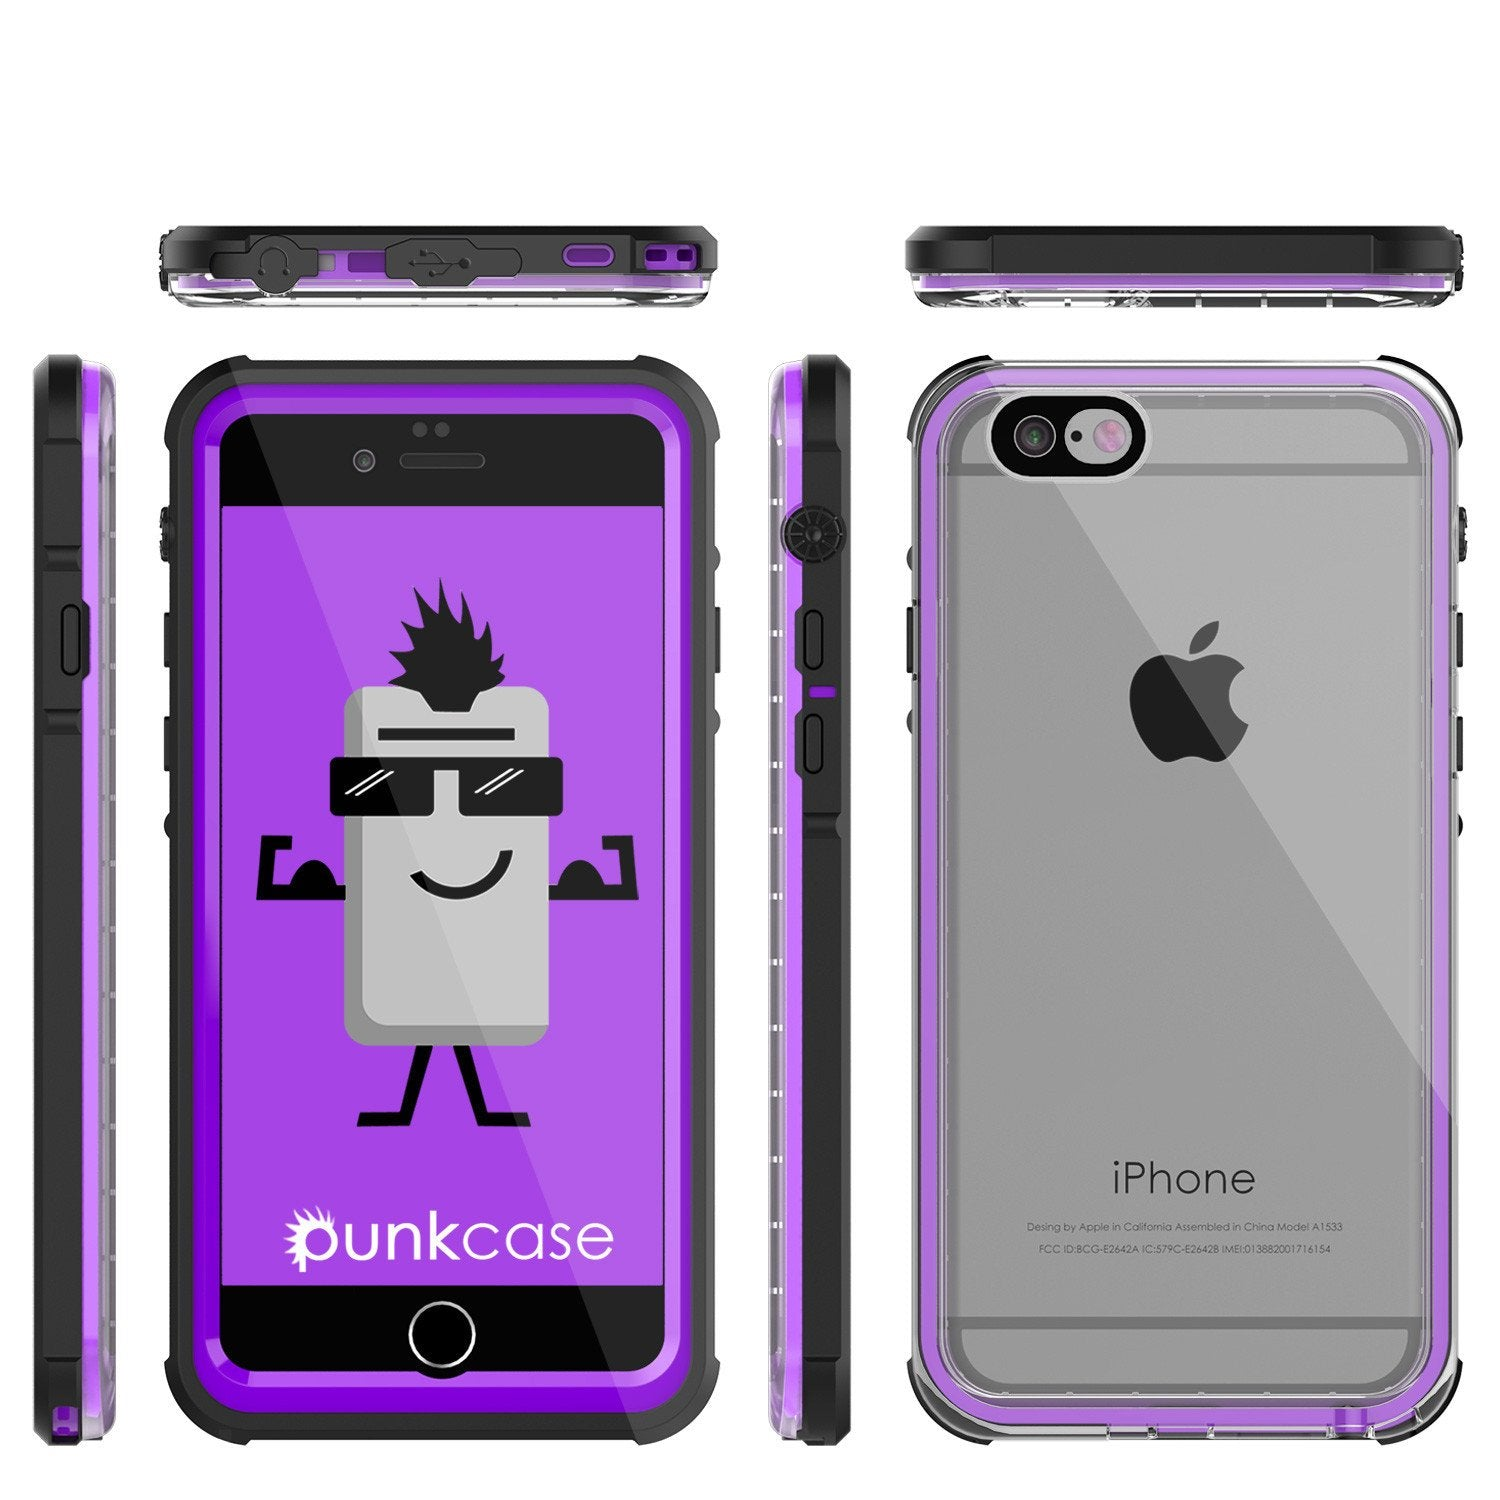 iPhone 6+/6S+ Plus Waterproof Case, PUNKcase CRYSTAL Purple W/ Attached Screen Protector | Warranty